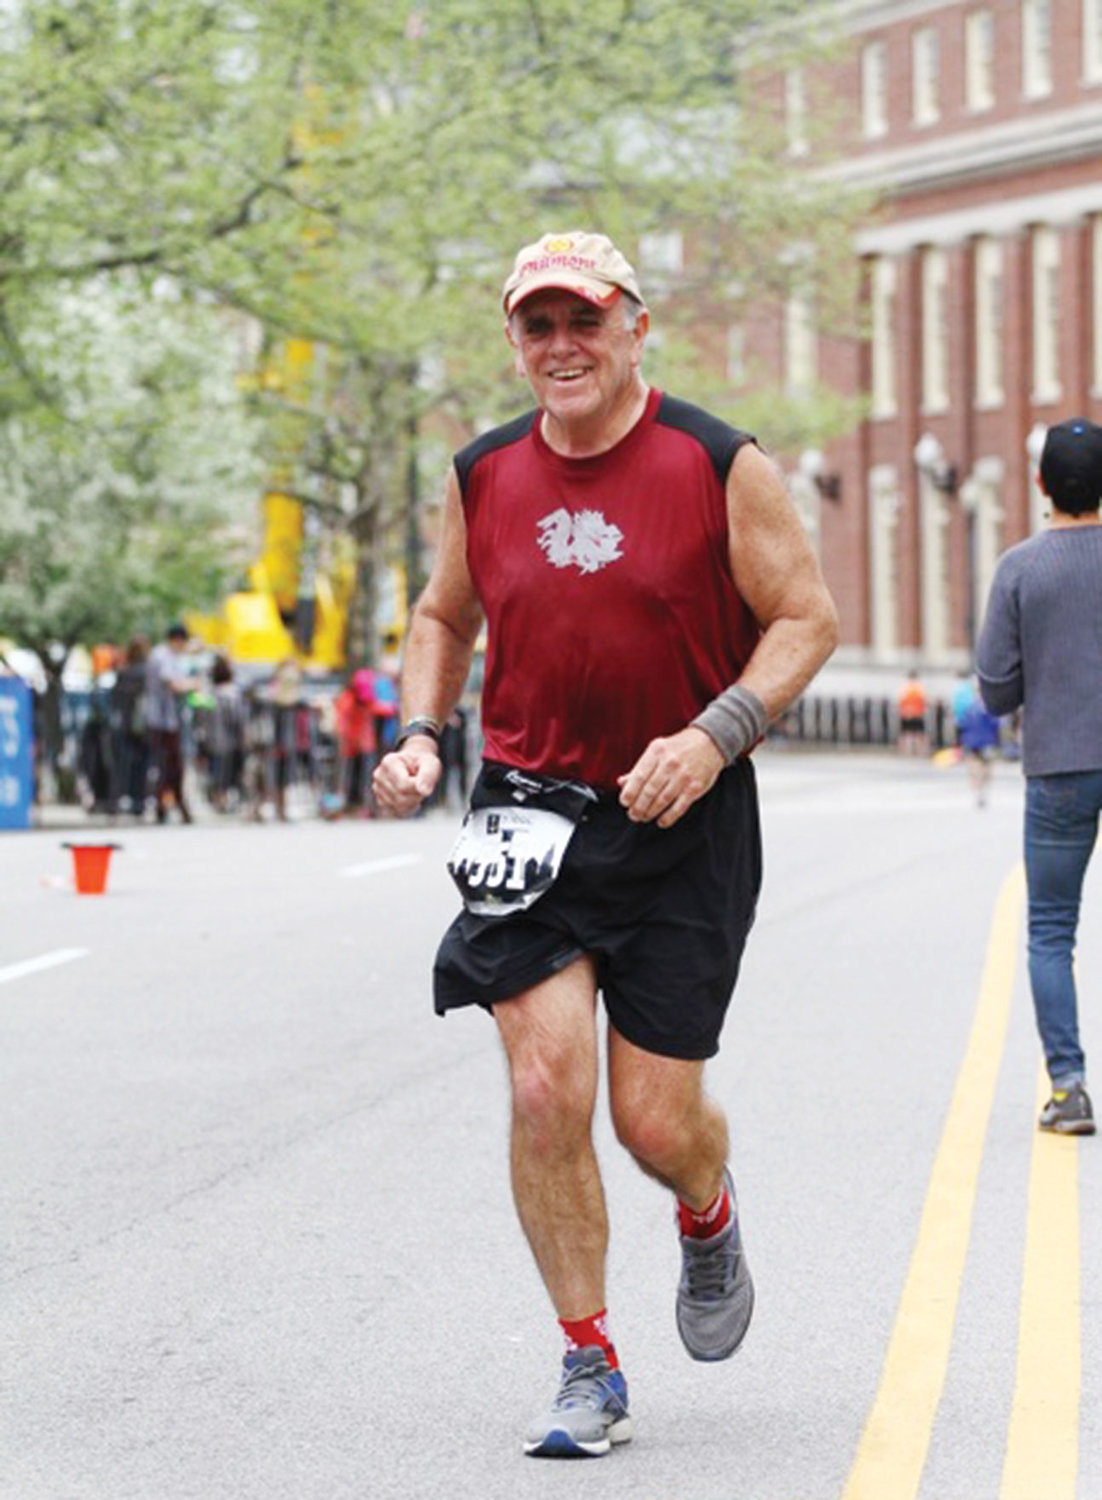 Archdiocesan employee Jim Mahony stays on course during a marathon in Providence, R.I., in May. Mahony, who ran his first New York City Marathon in 1981, has crossed the finish line of each race since then.